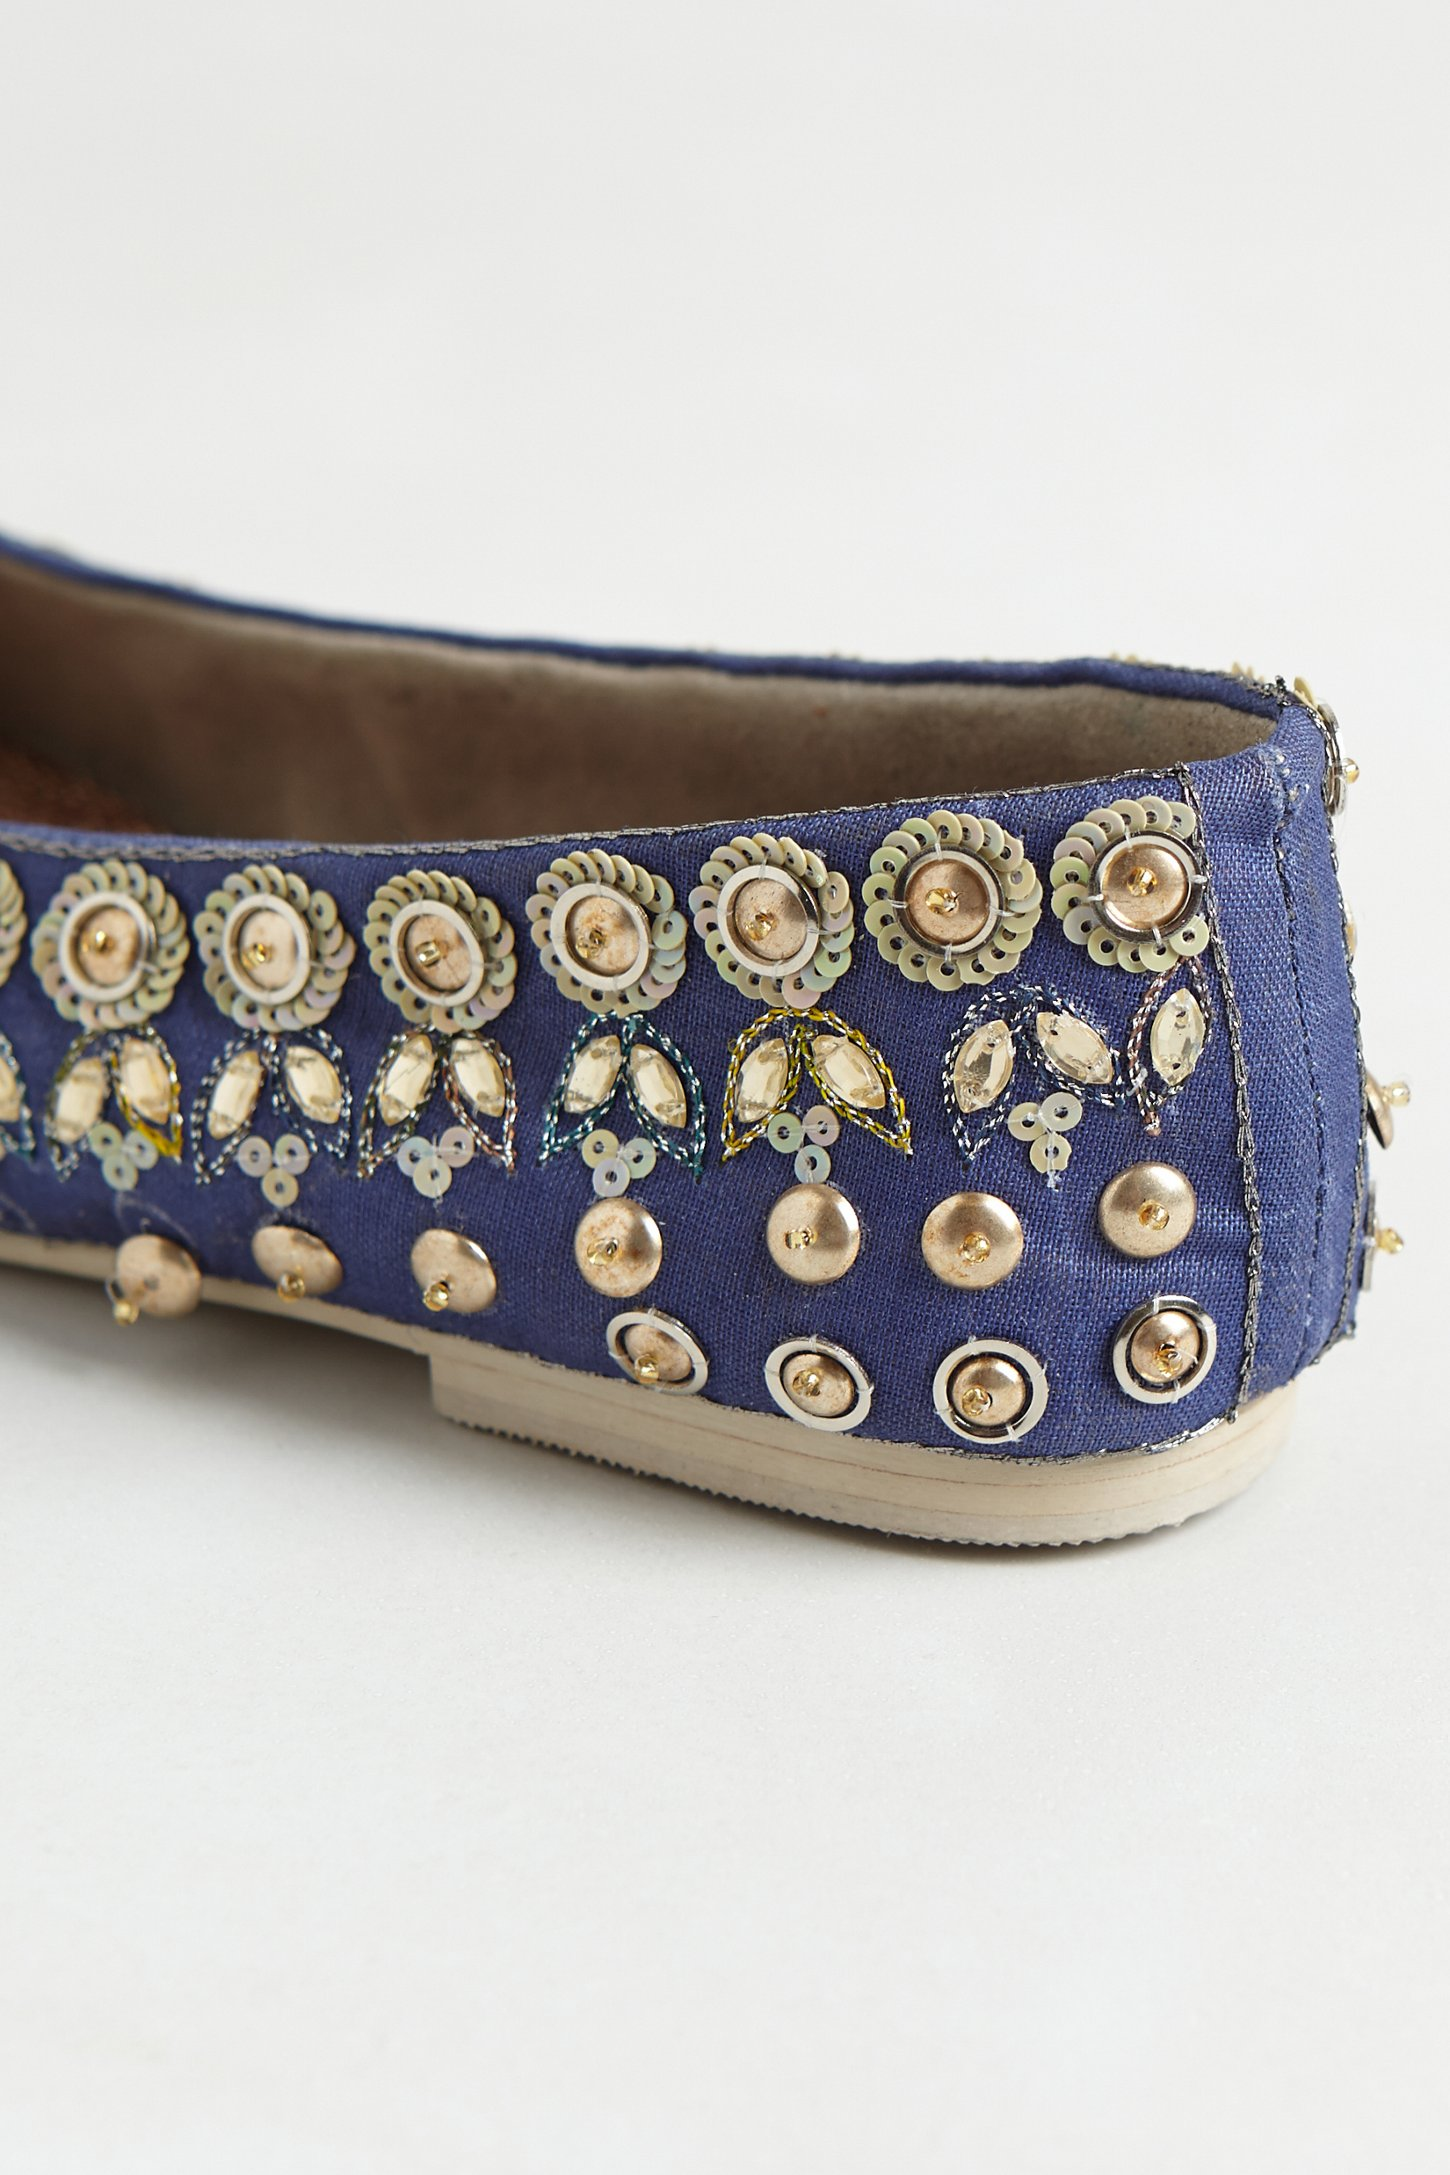 Anthropologie Jeweled Ballet Flats In Blue Lyst